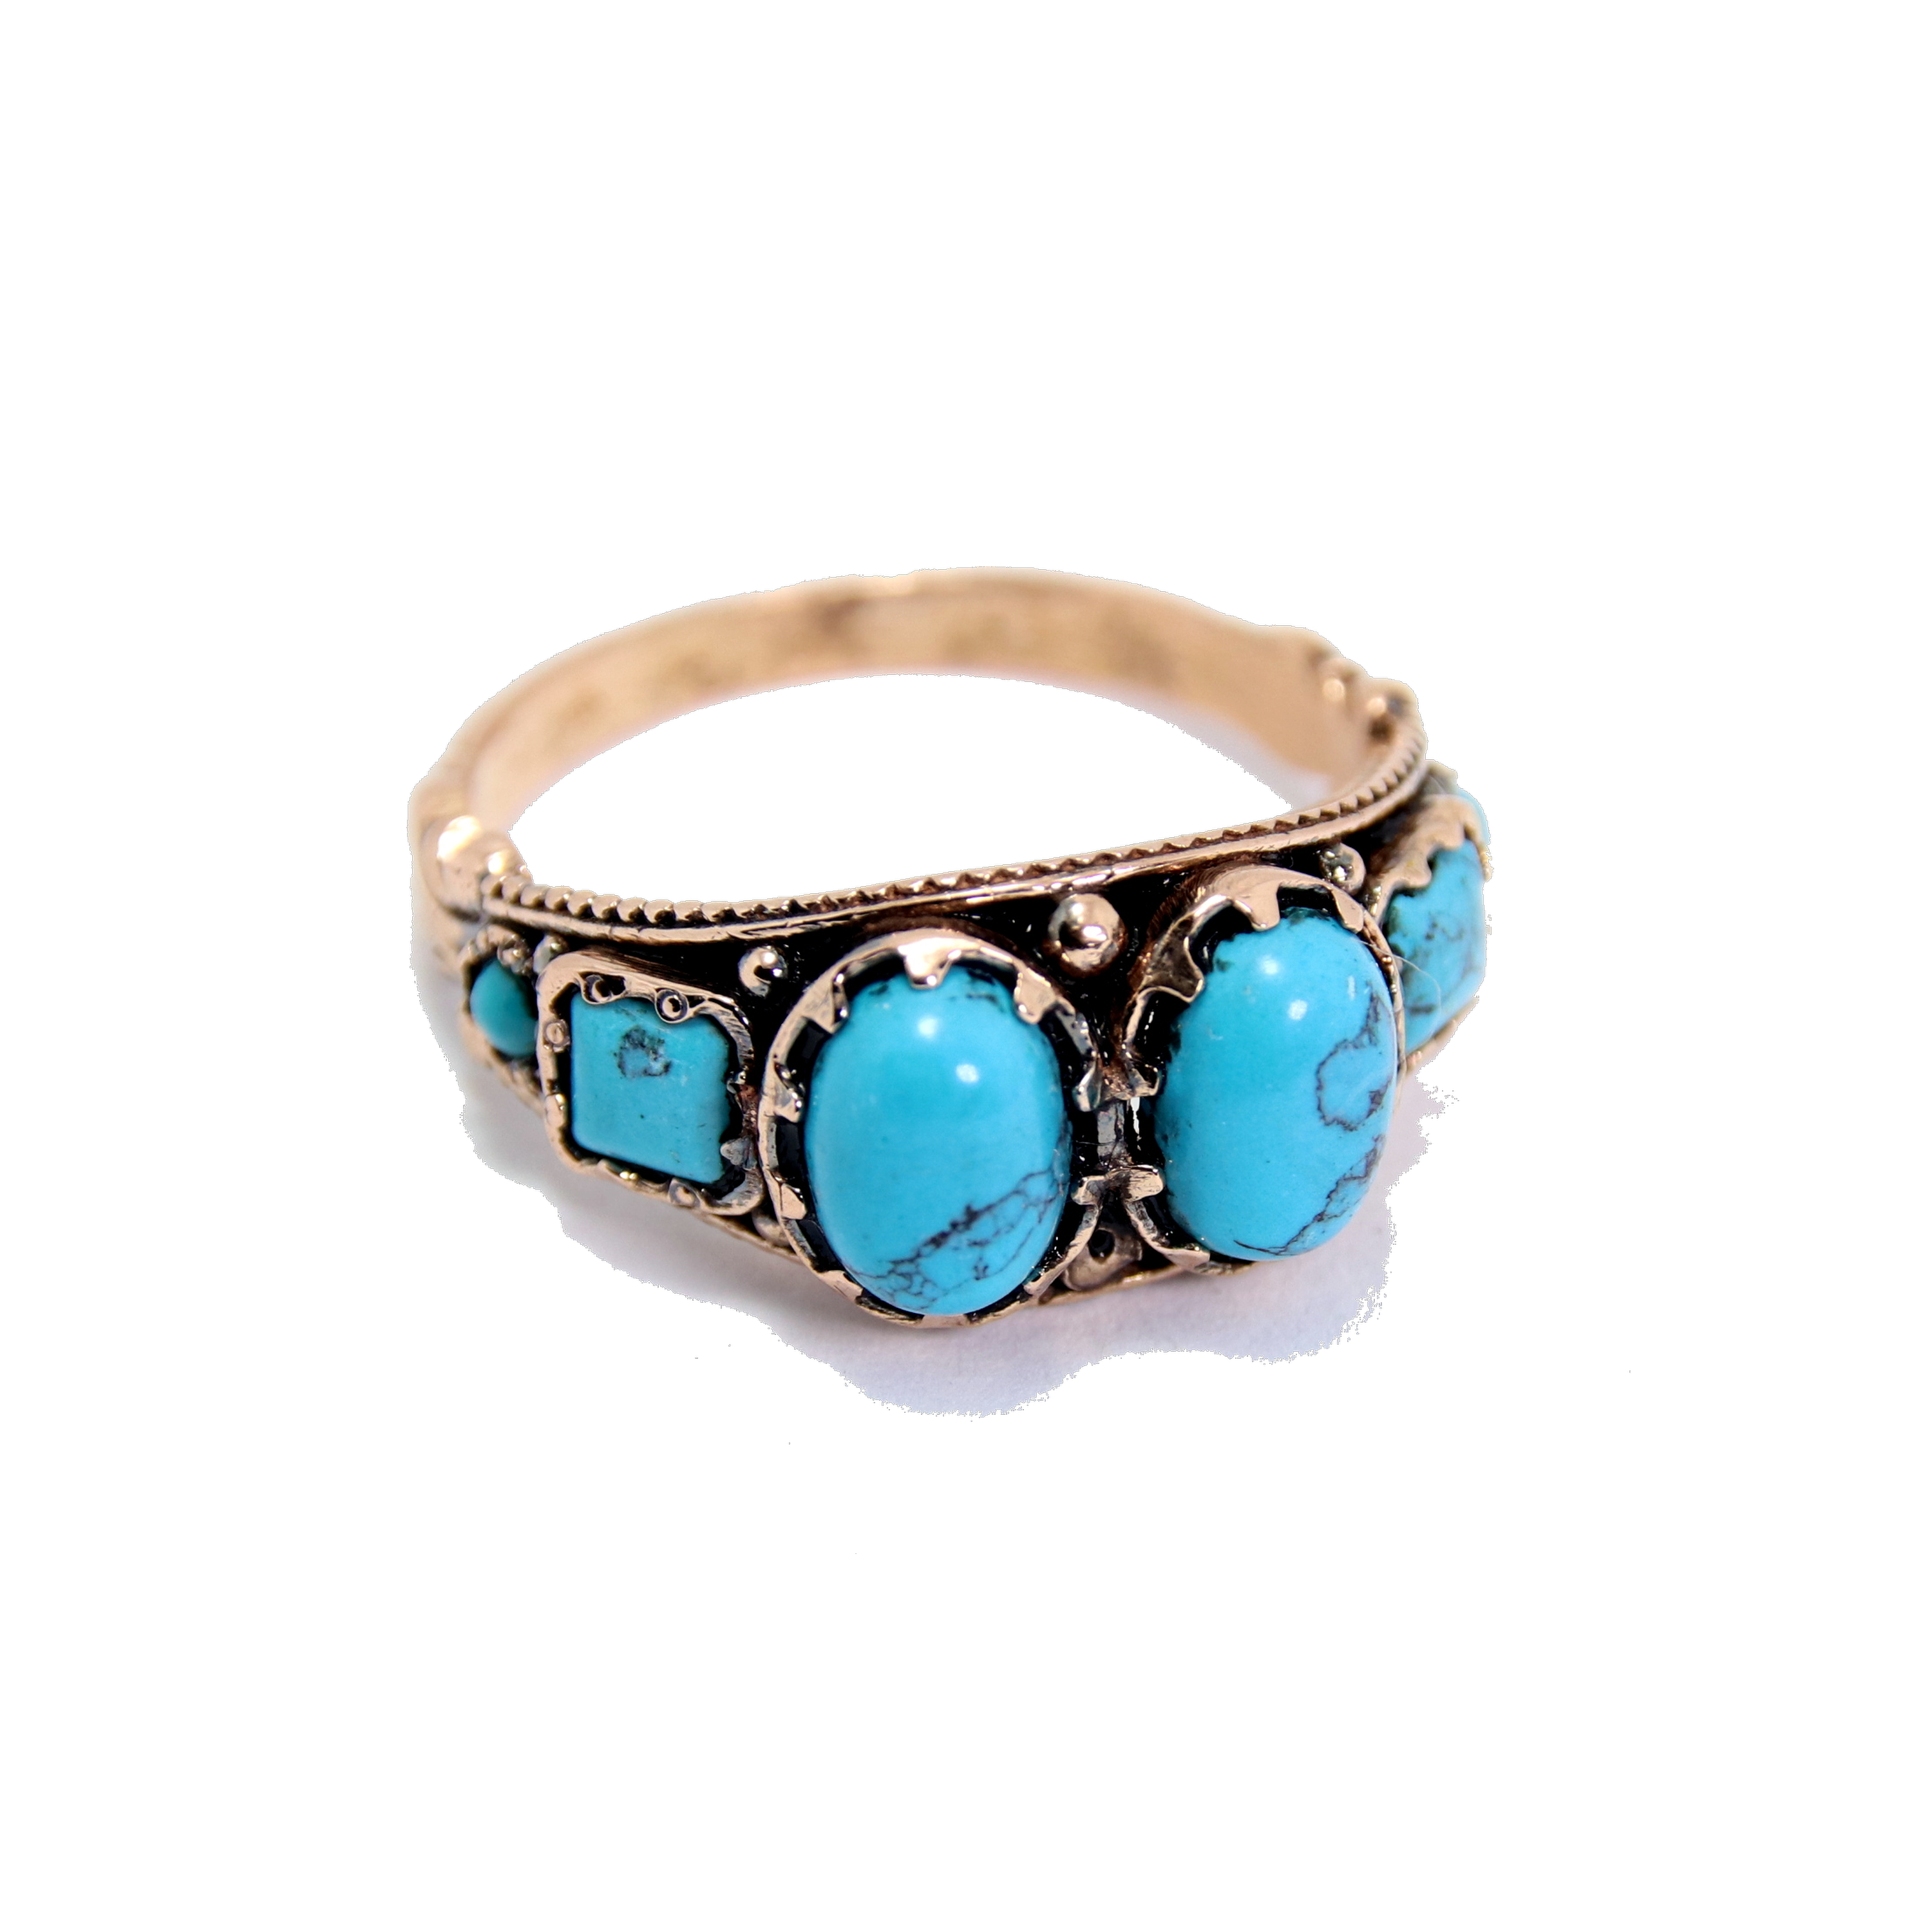 Antique Rose Gold Turquoise Ring 2 - Baltinester Jewelry